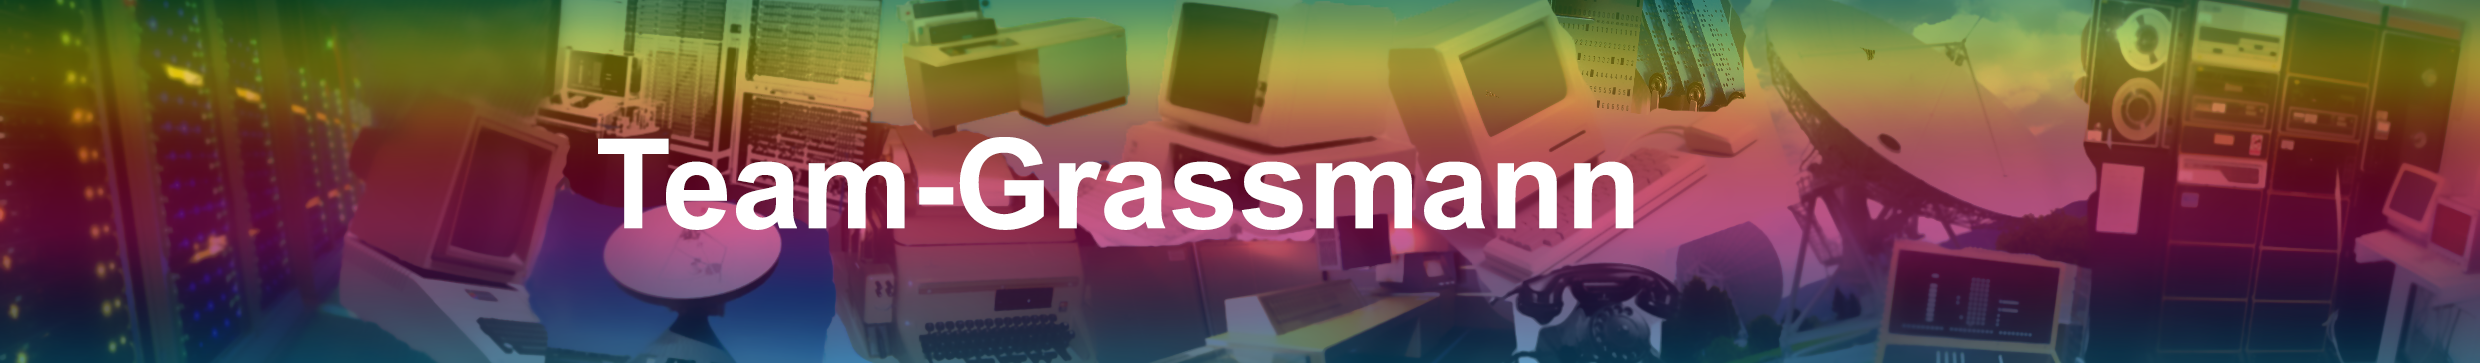 Team-Grassmann Homepage